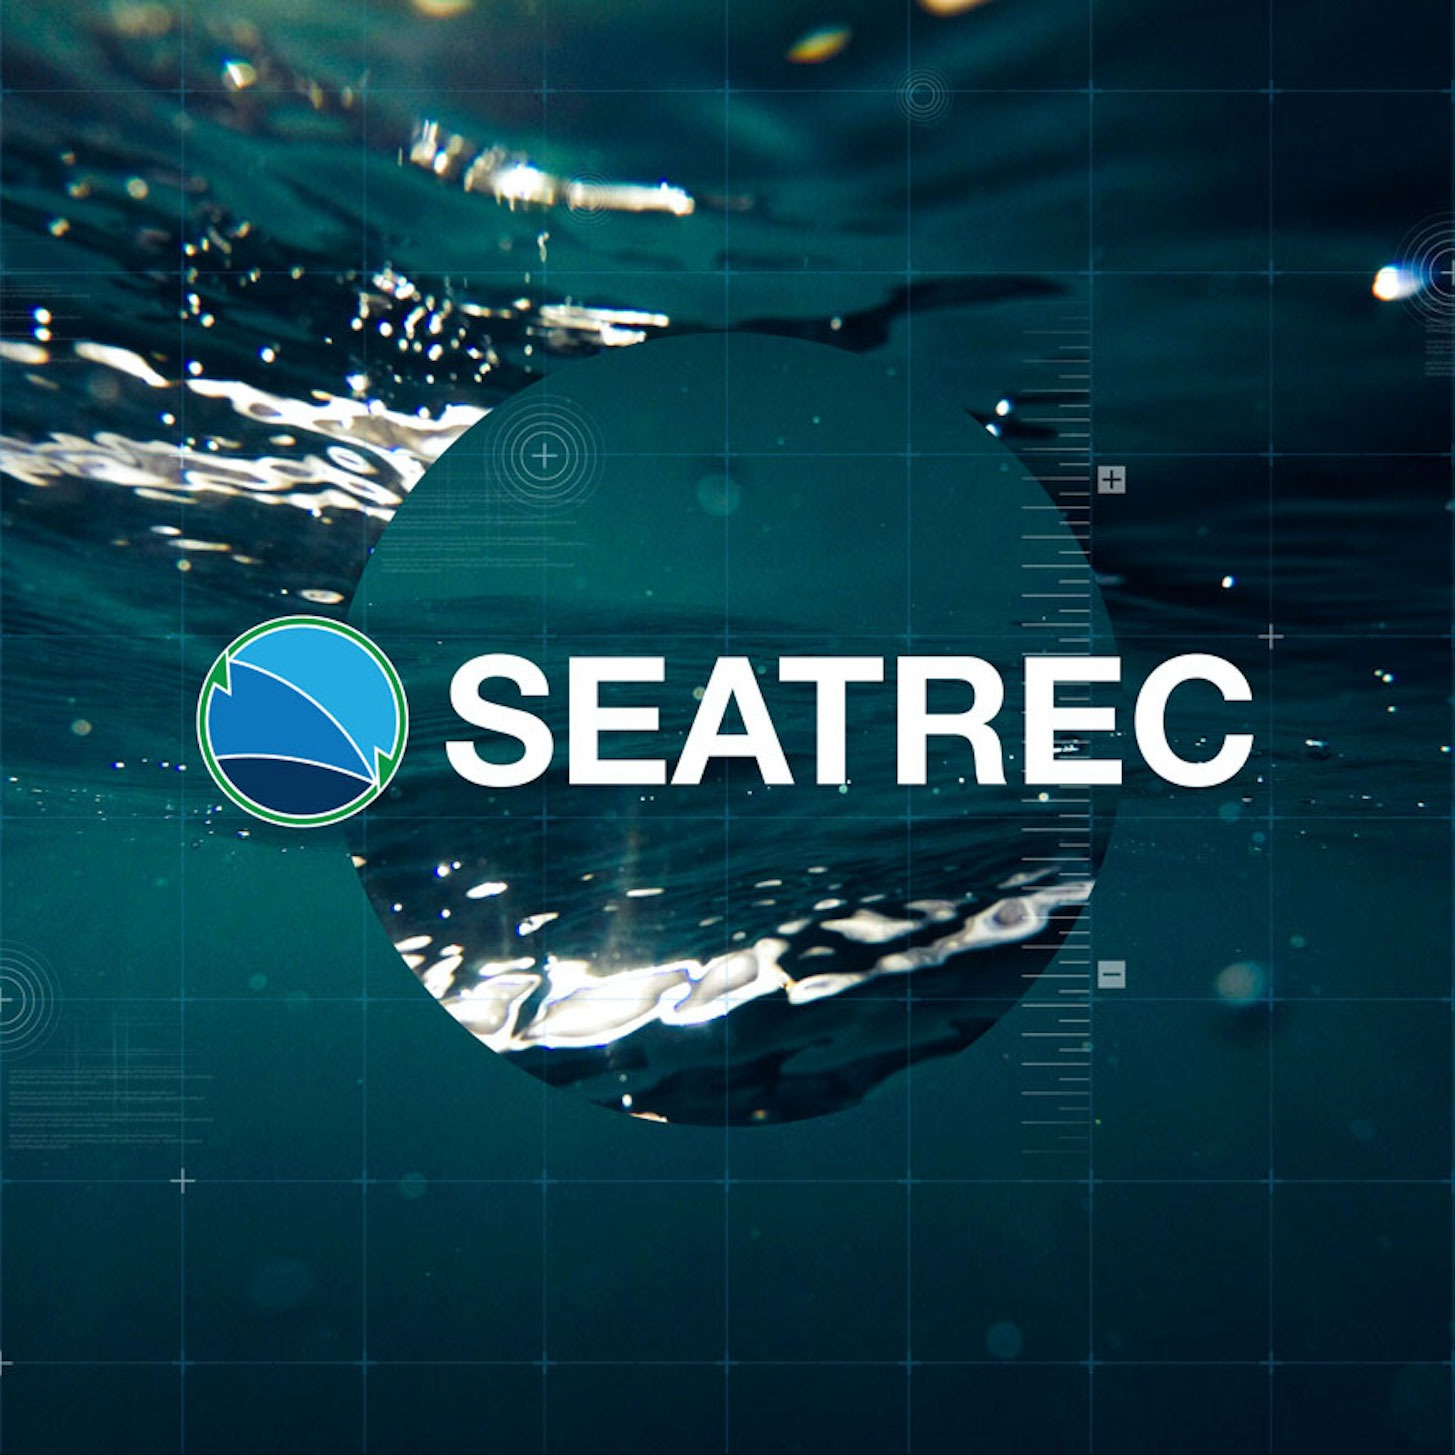 Yi Chao - Founder and CEO, Seatrec